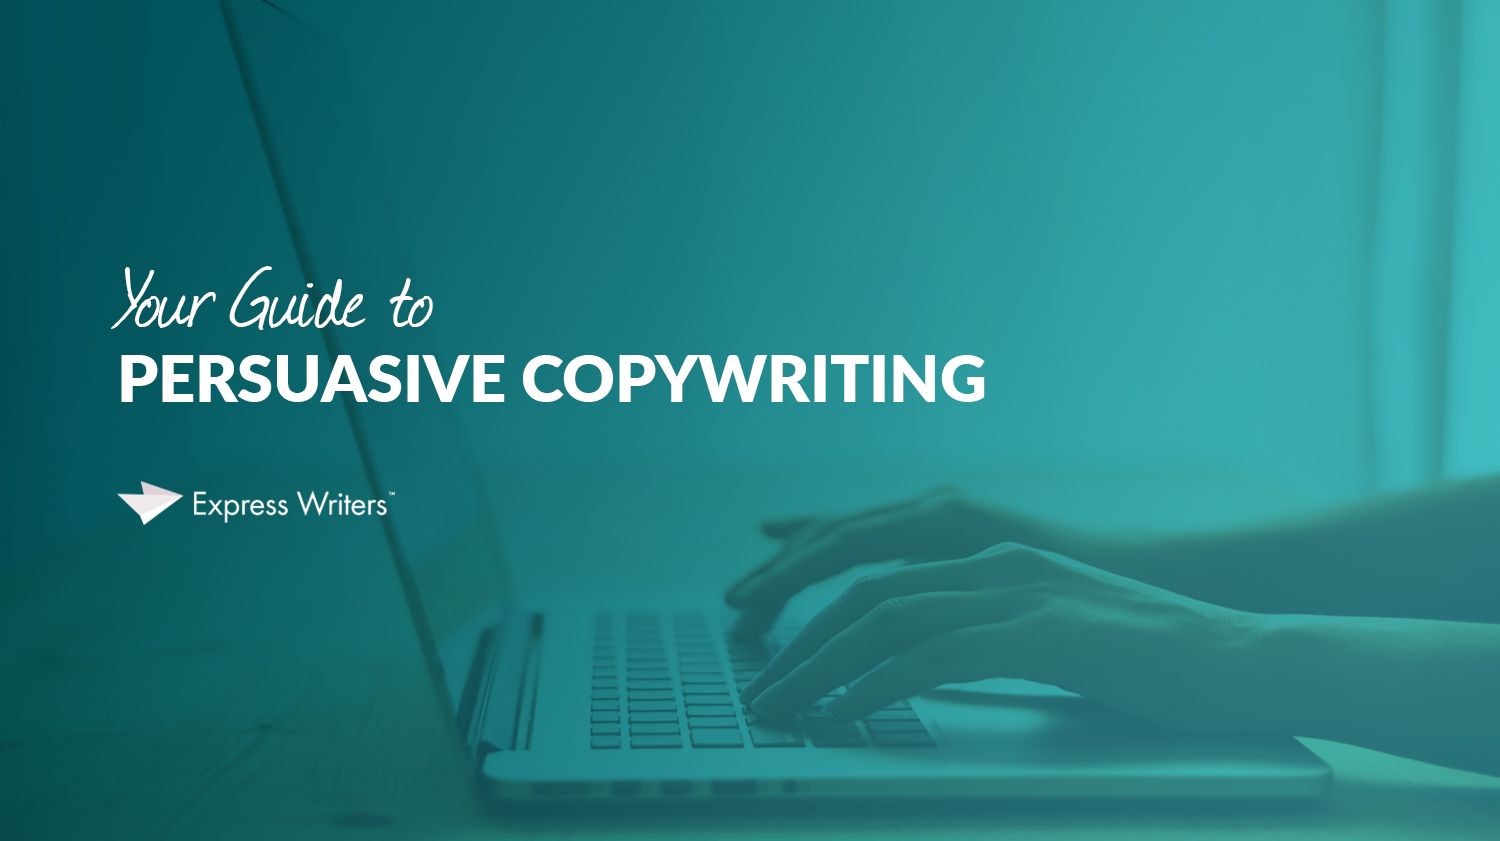 5 persuasive copywriting tips